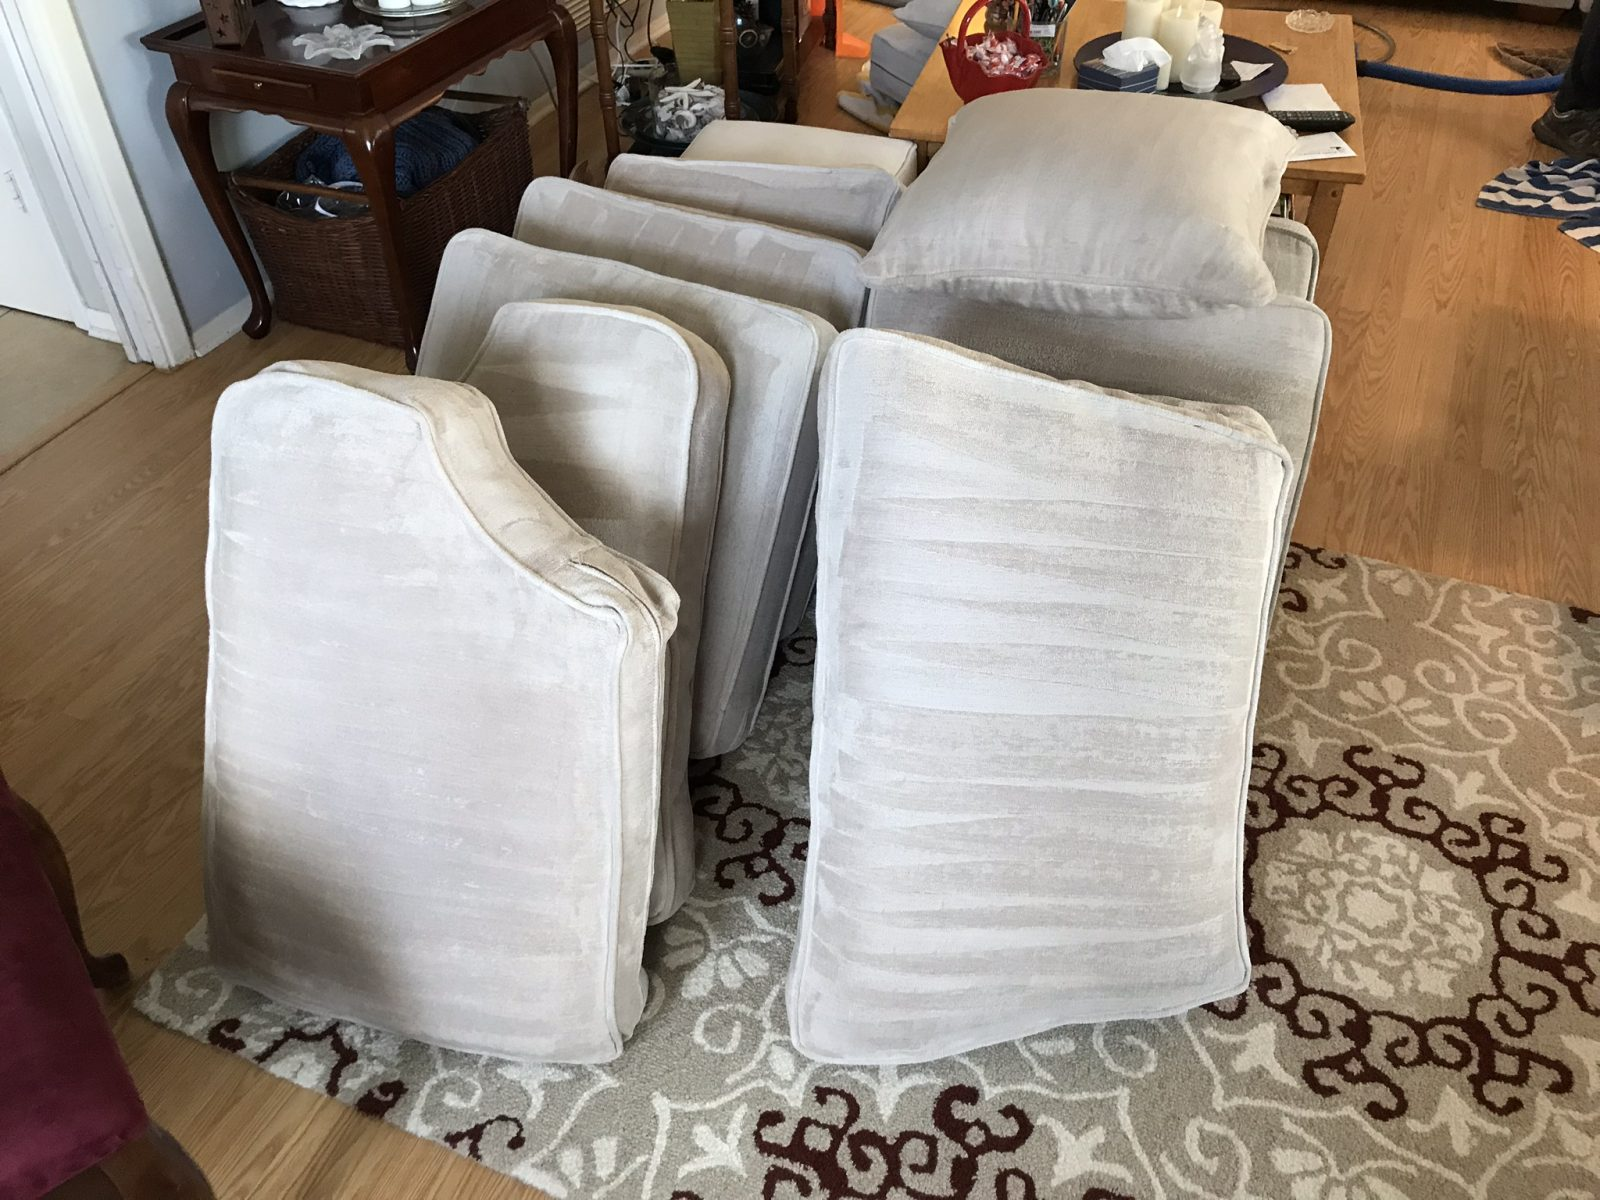 Professional Upholstery Cleaning Oldsmar Florida by Howards Cleaning Service